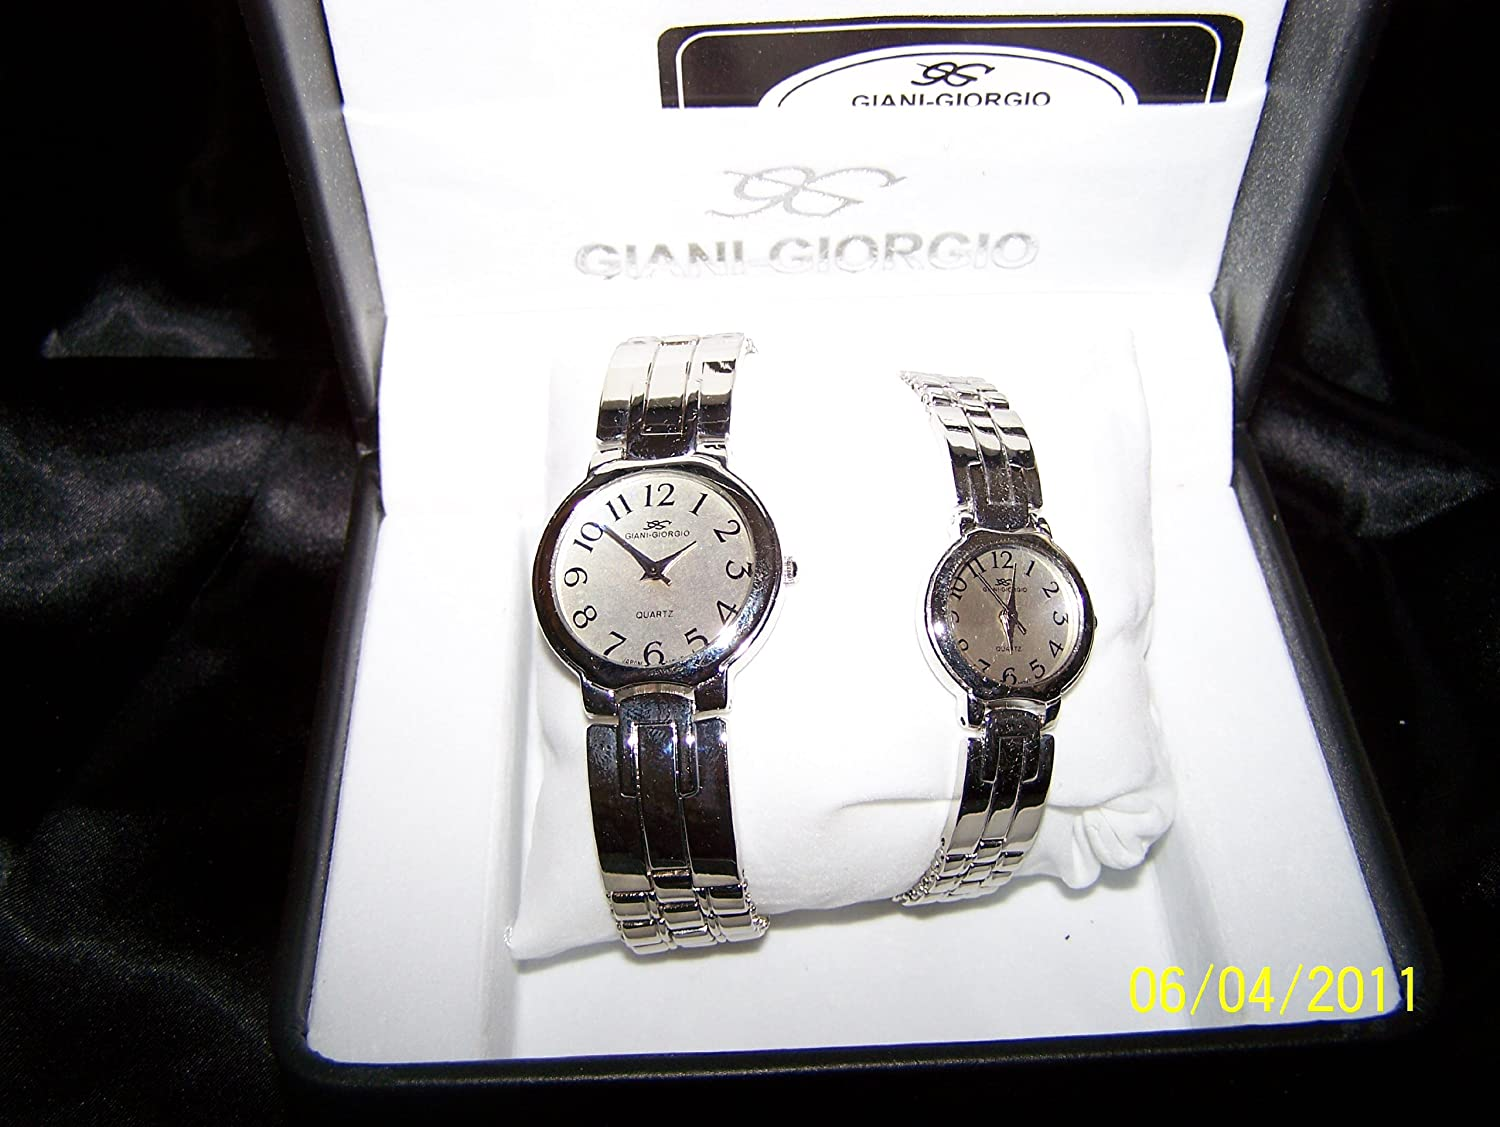 Amazon.com: (New) Giani-Giorgio Quartz His & Hers Excellent Collection: Watches